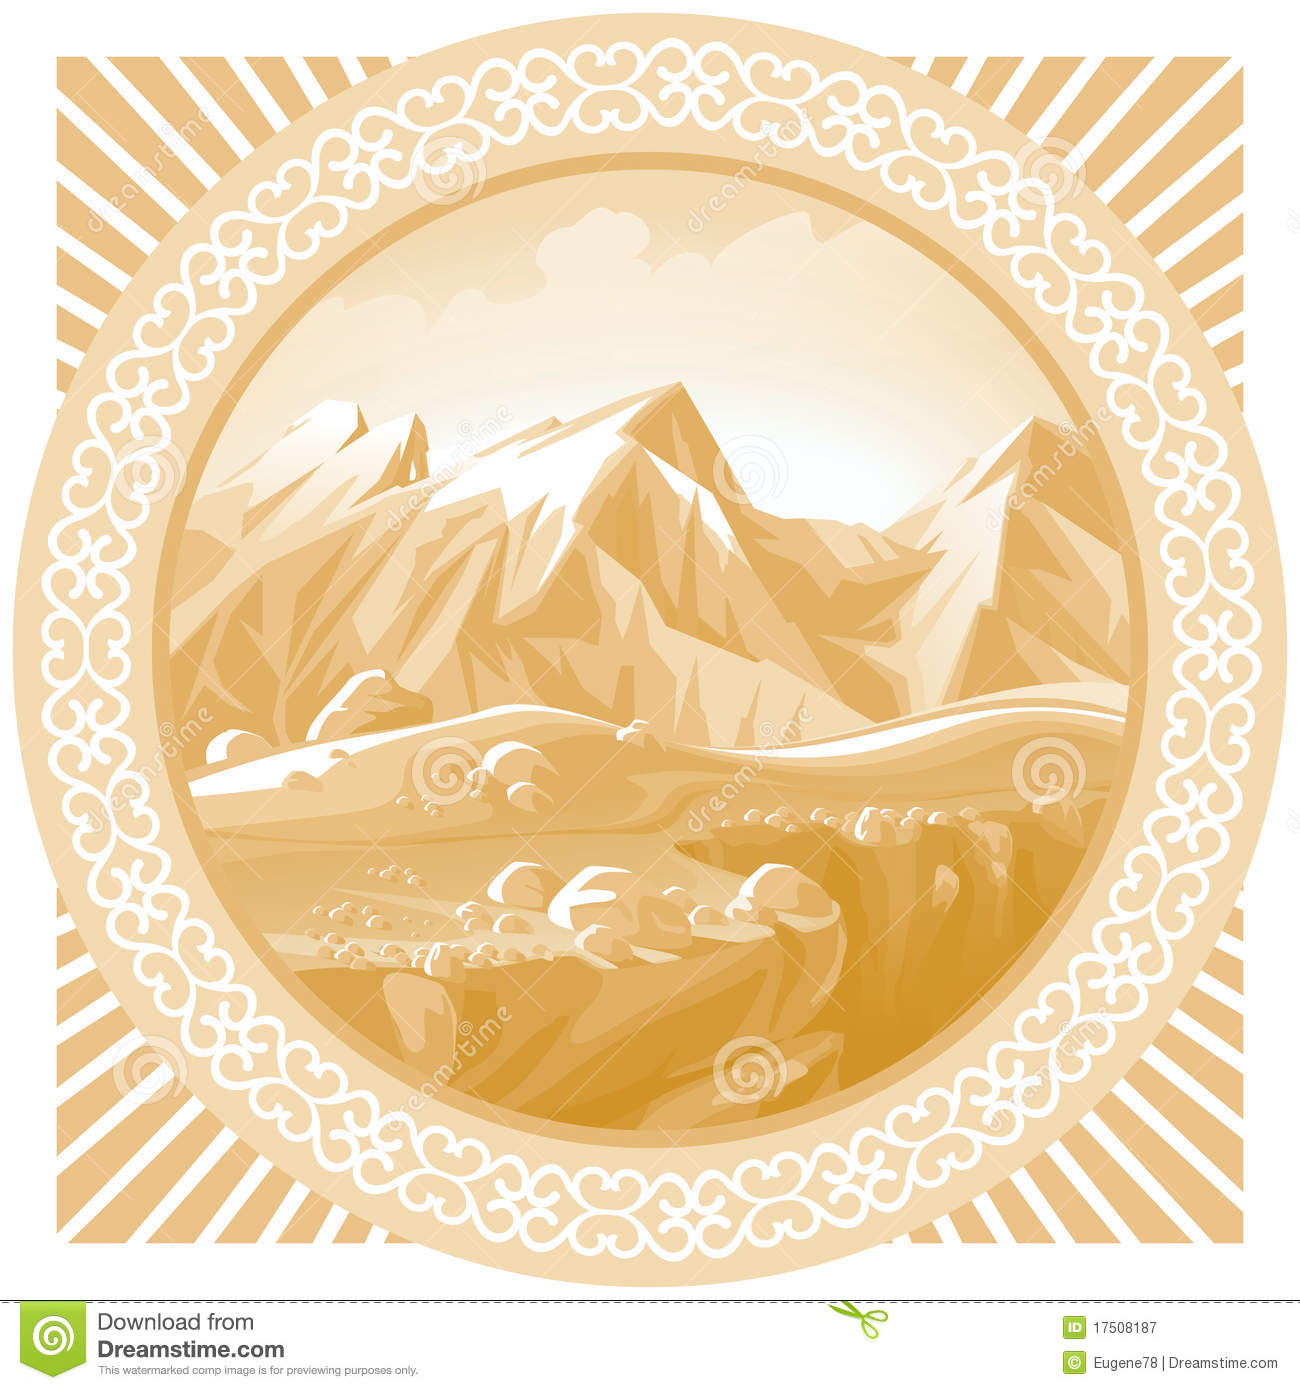 Caucasus Mountains In The Frame. Royalty Free Stock Photography.